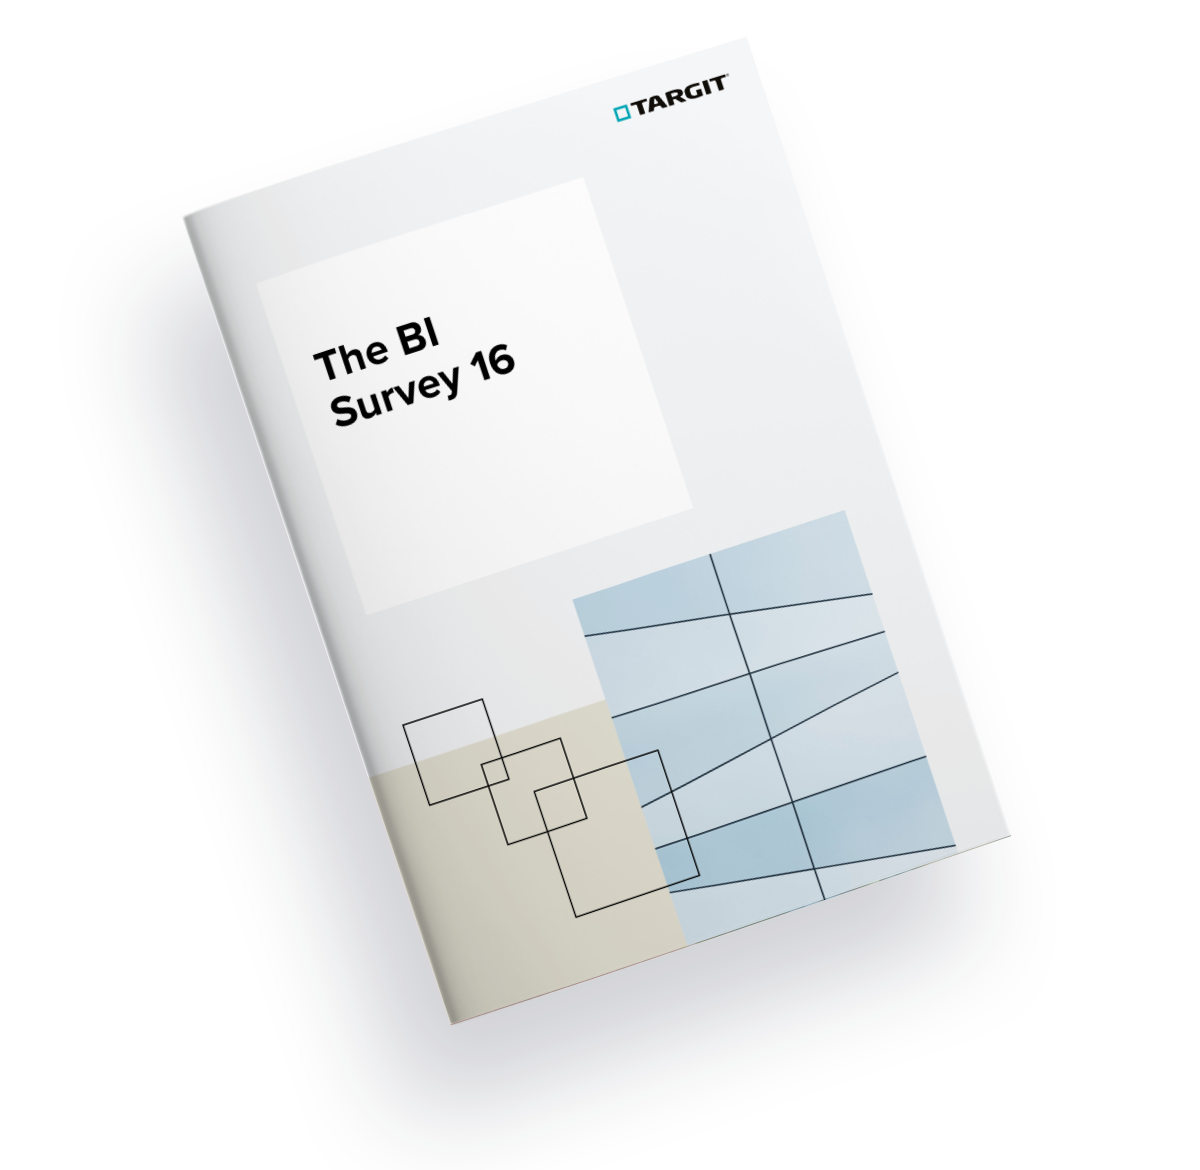 The BI Survey 16